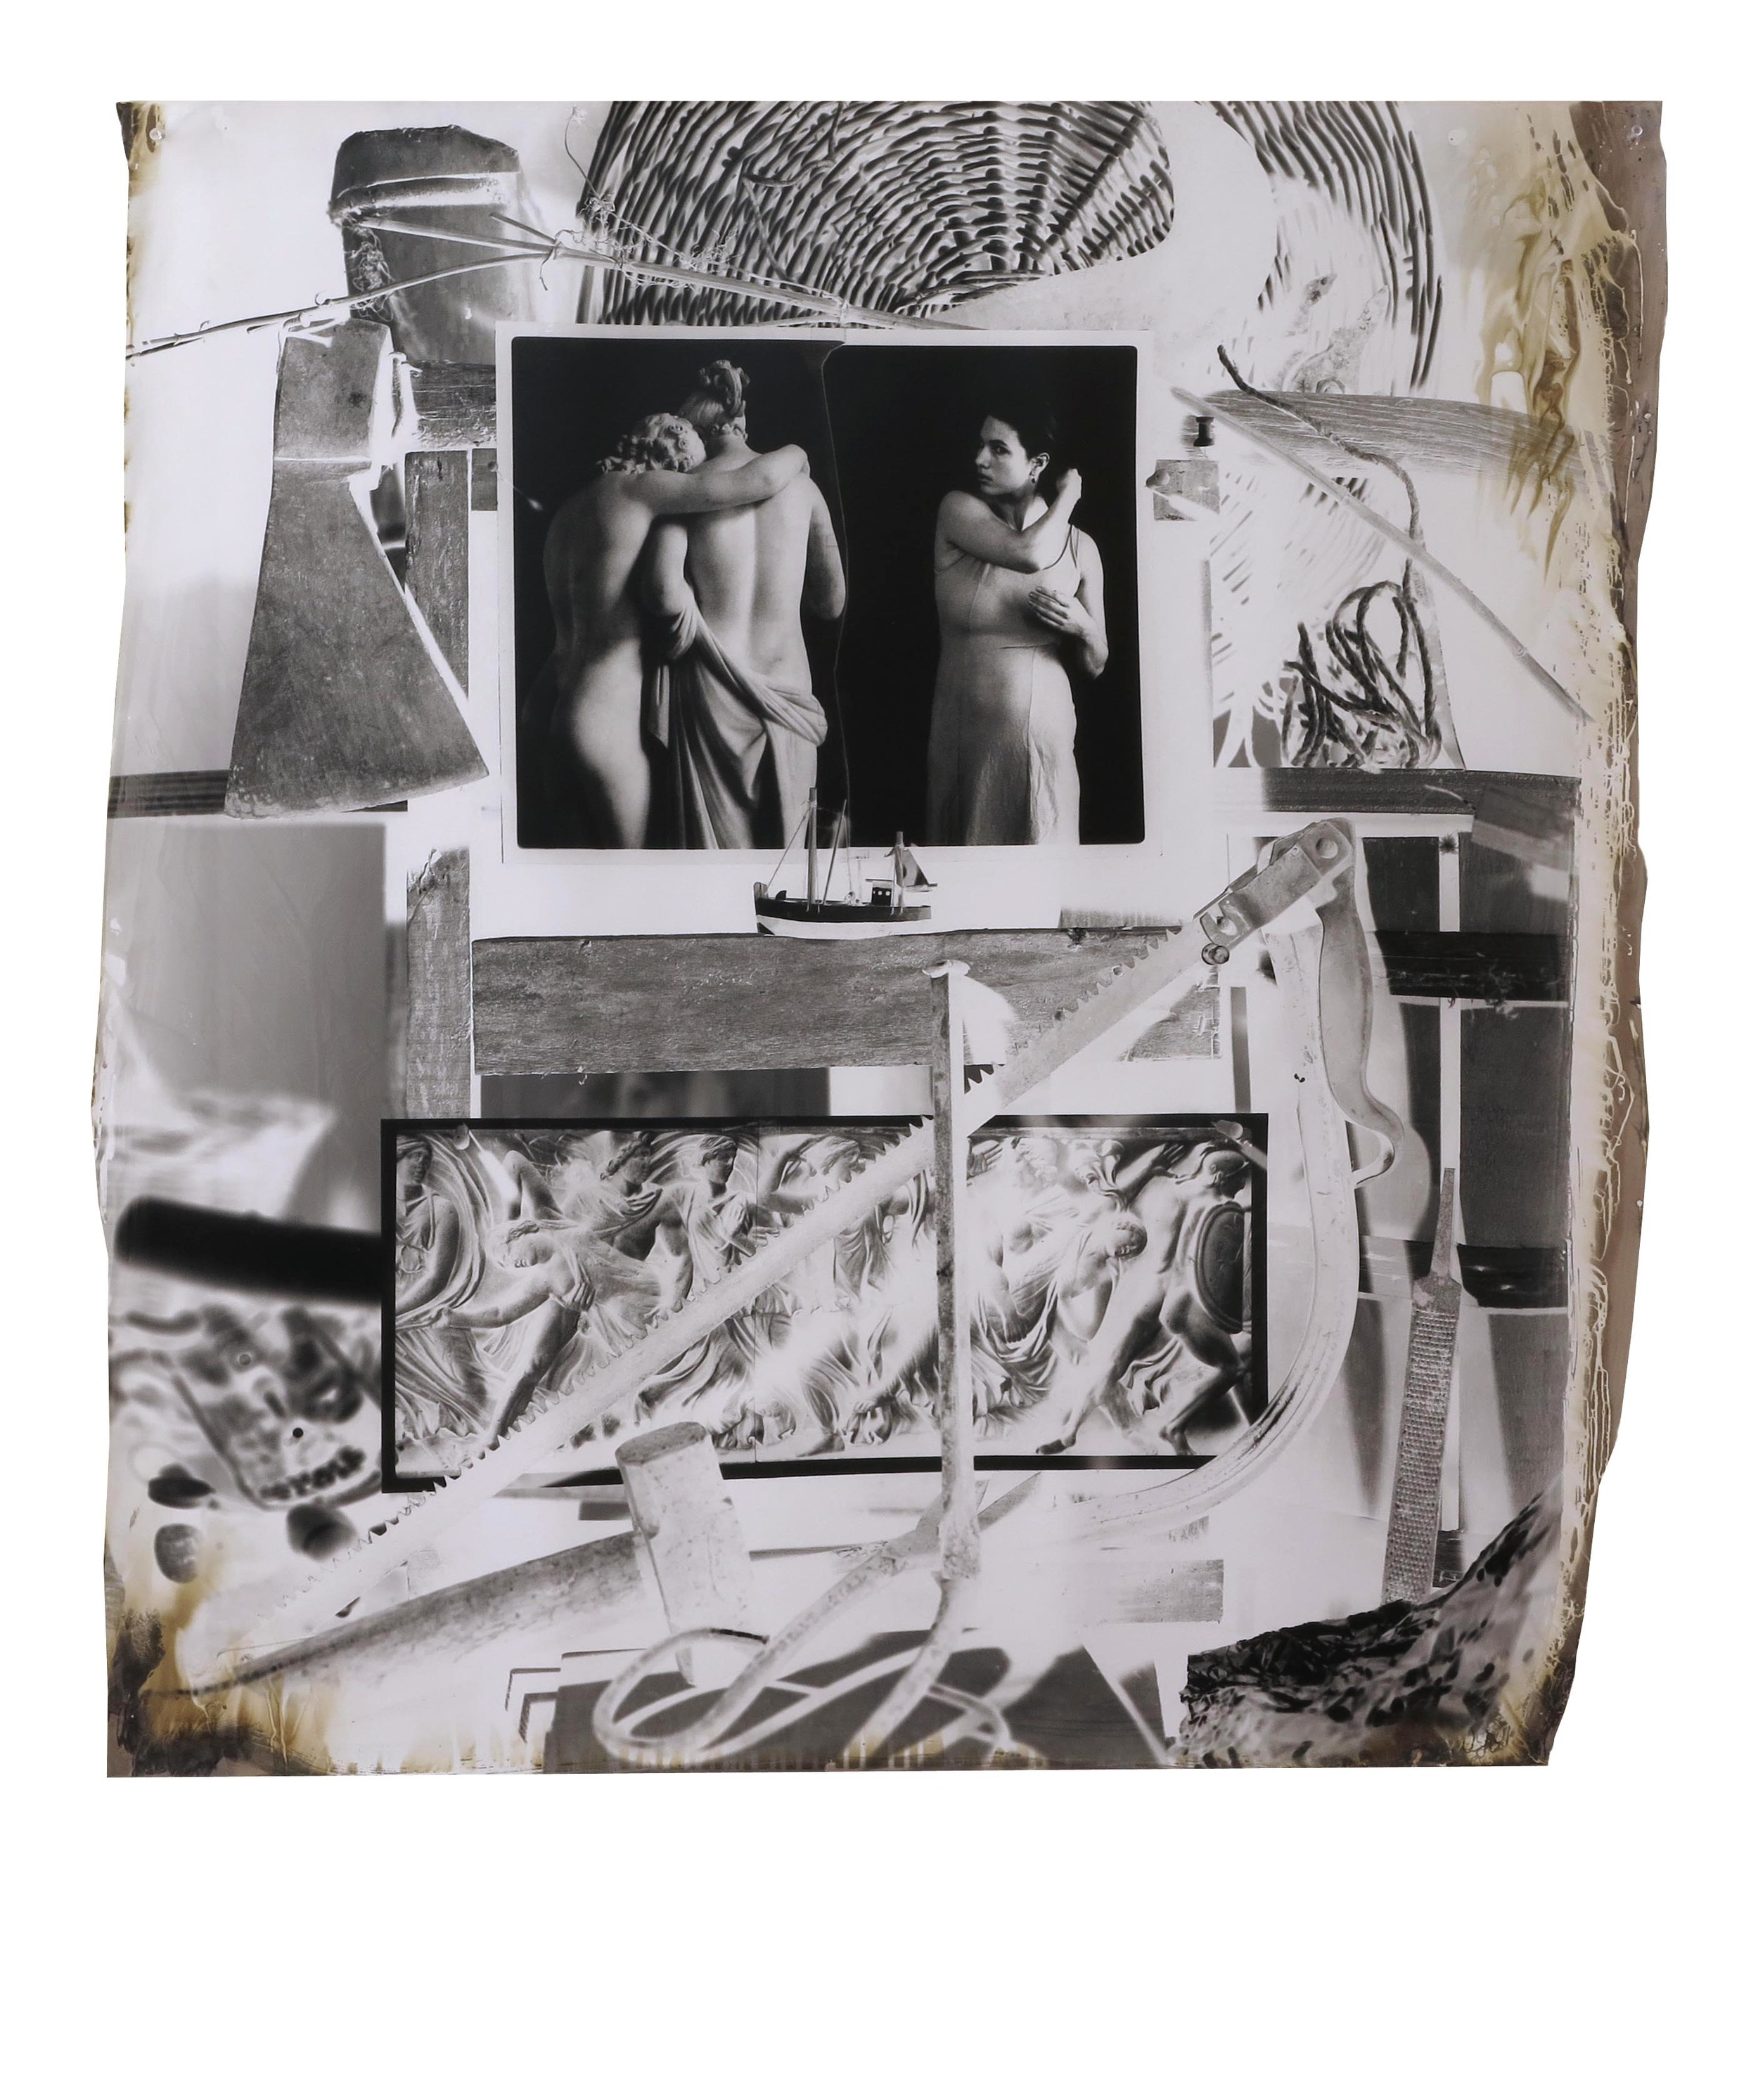 War, Sadness, and Escape  1999  gelatin silver print  42 x 38.5 inches